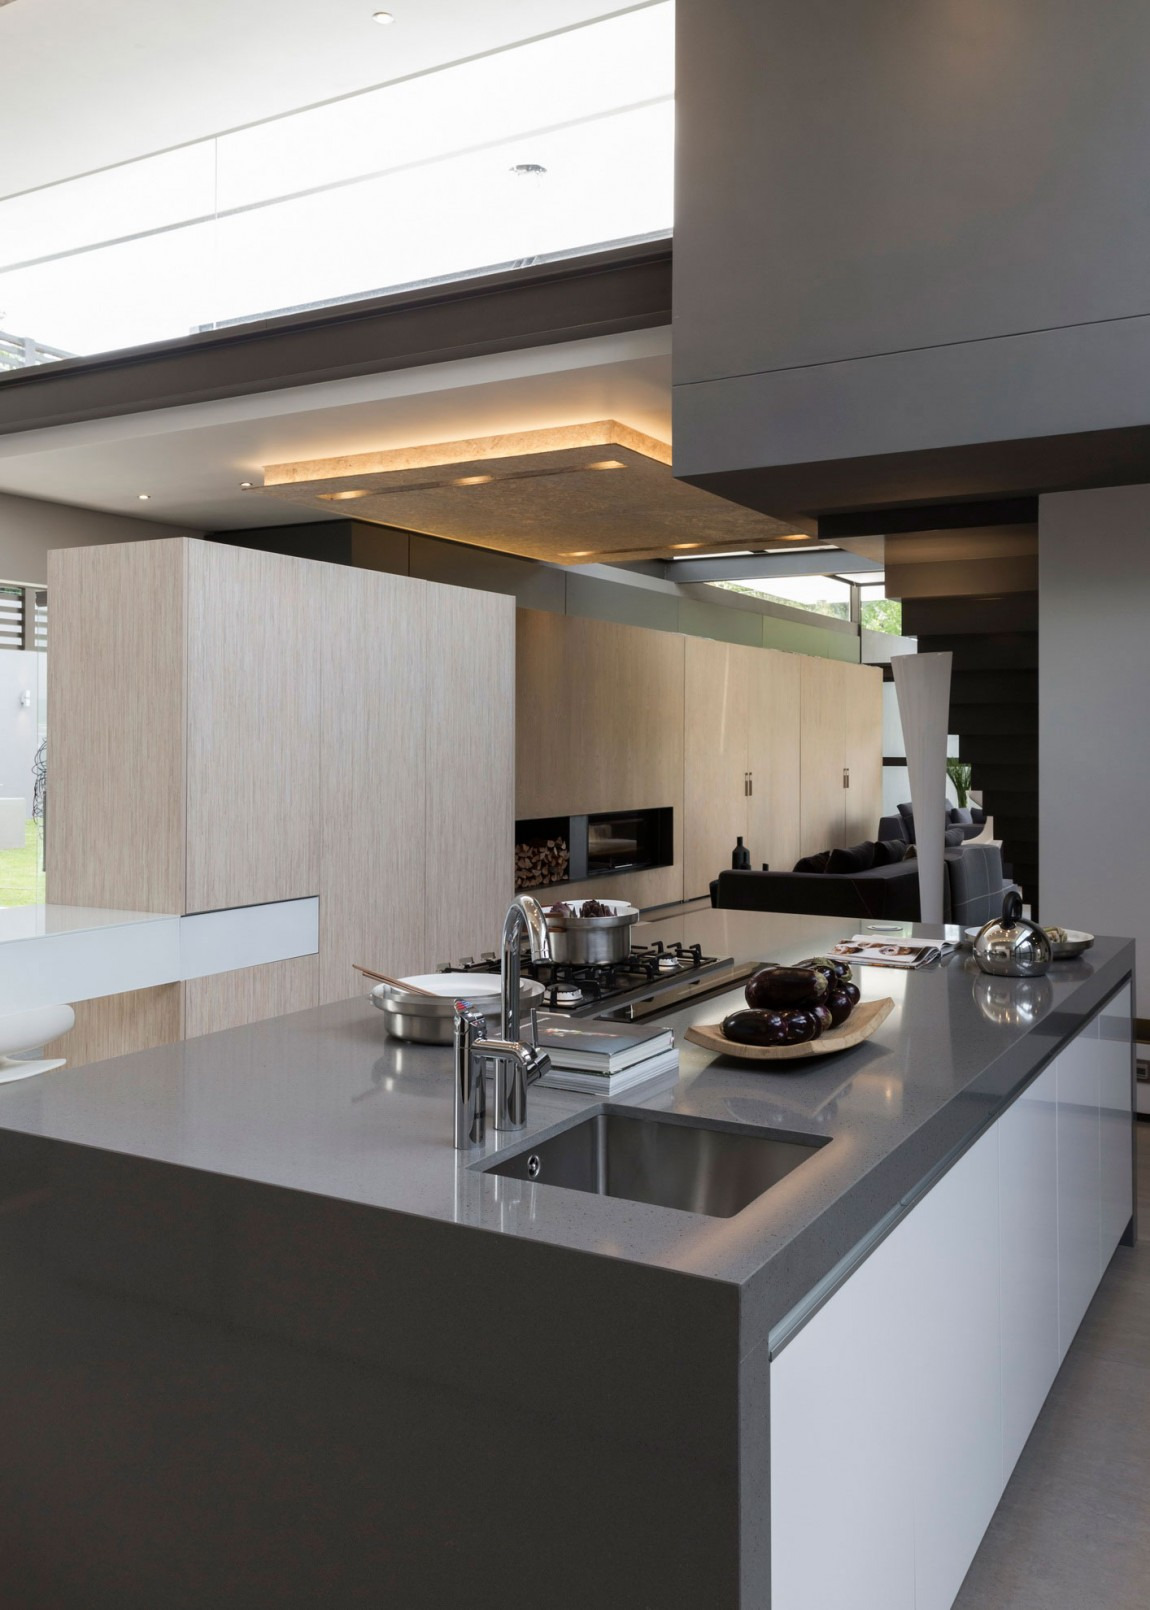 Single Story Modern House Design House Sar by Nico van der Meulen Architects on Architecture Beast 17